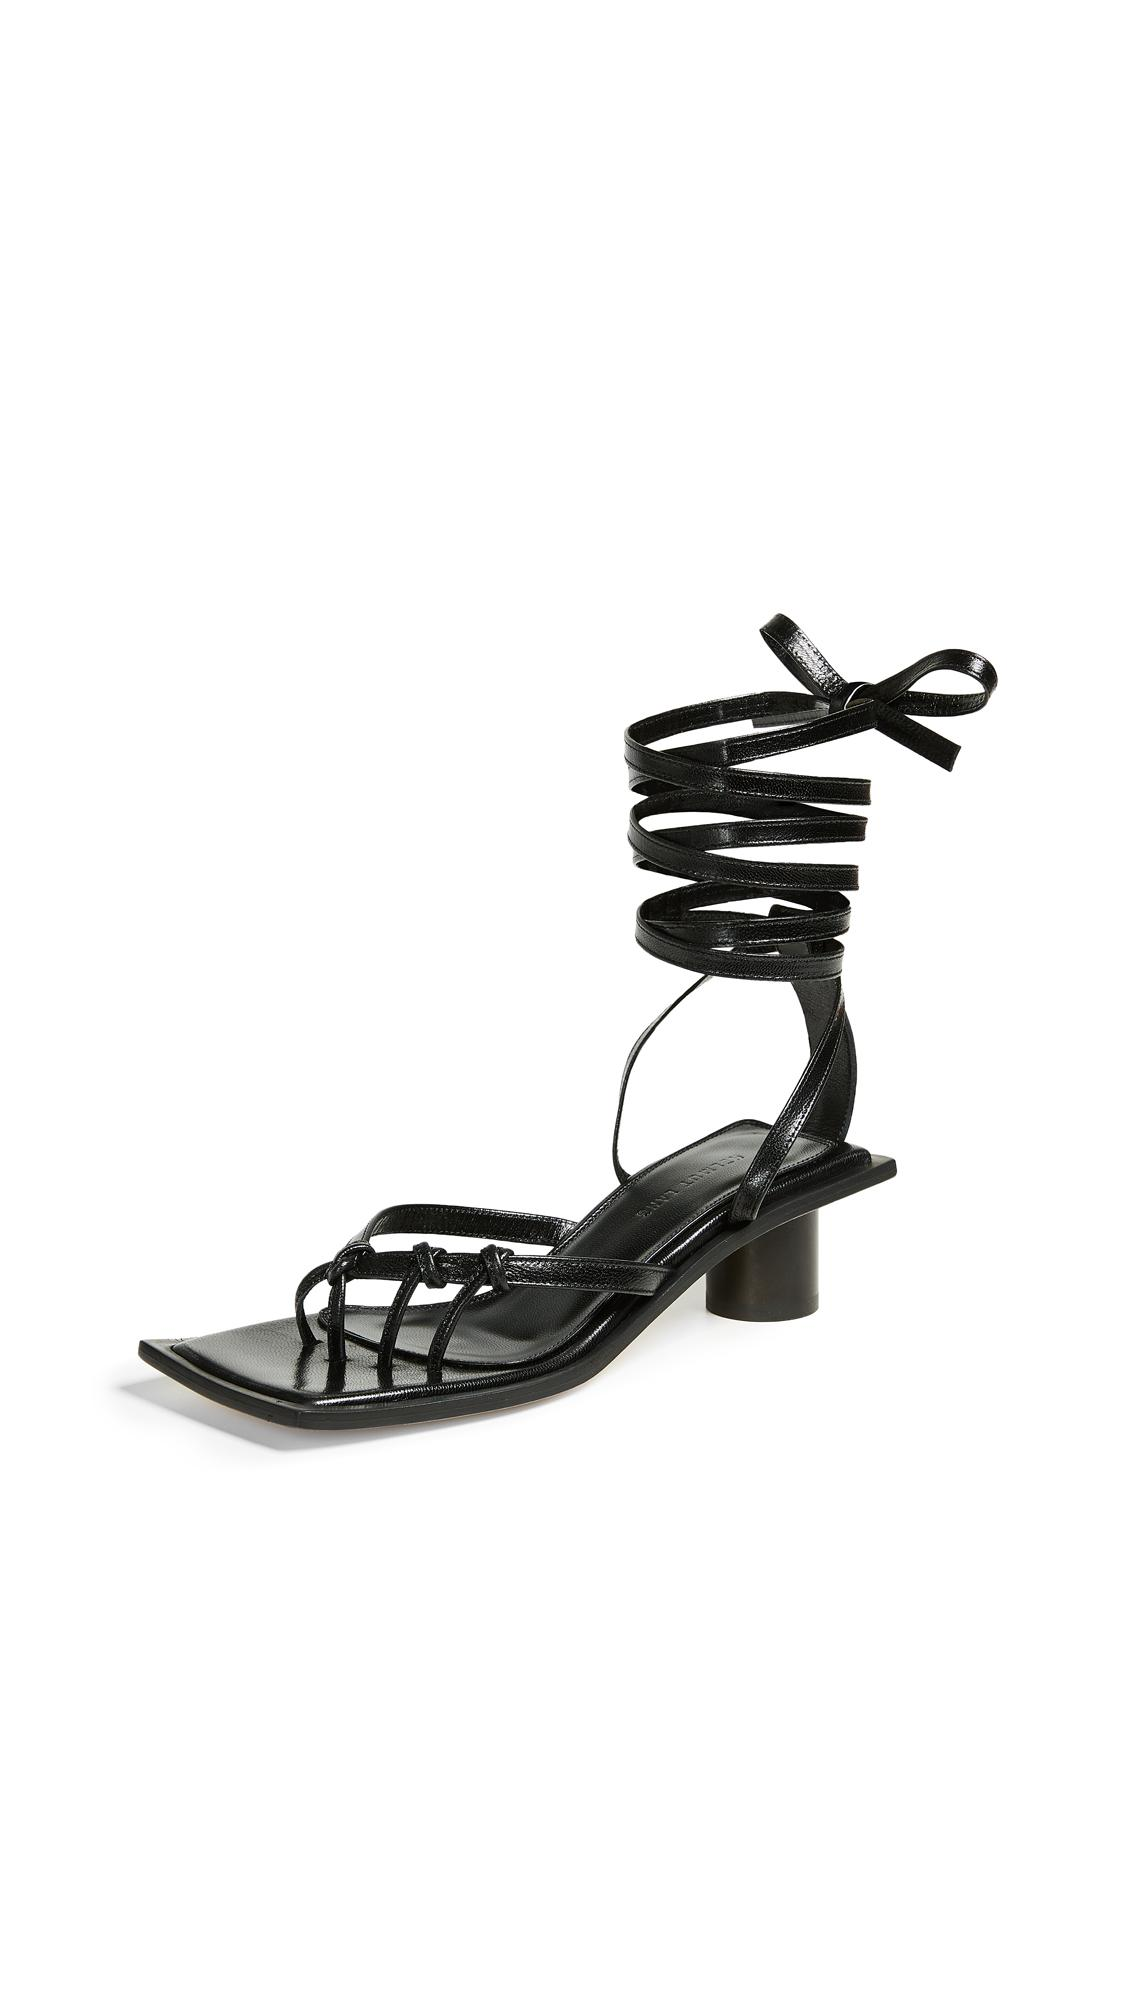 fa59f1b7e451 Helmut Lang Knotted Mid Heel Sandals In Black